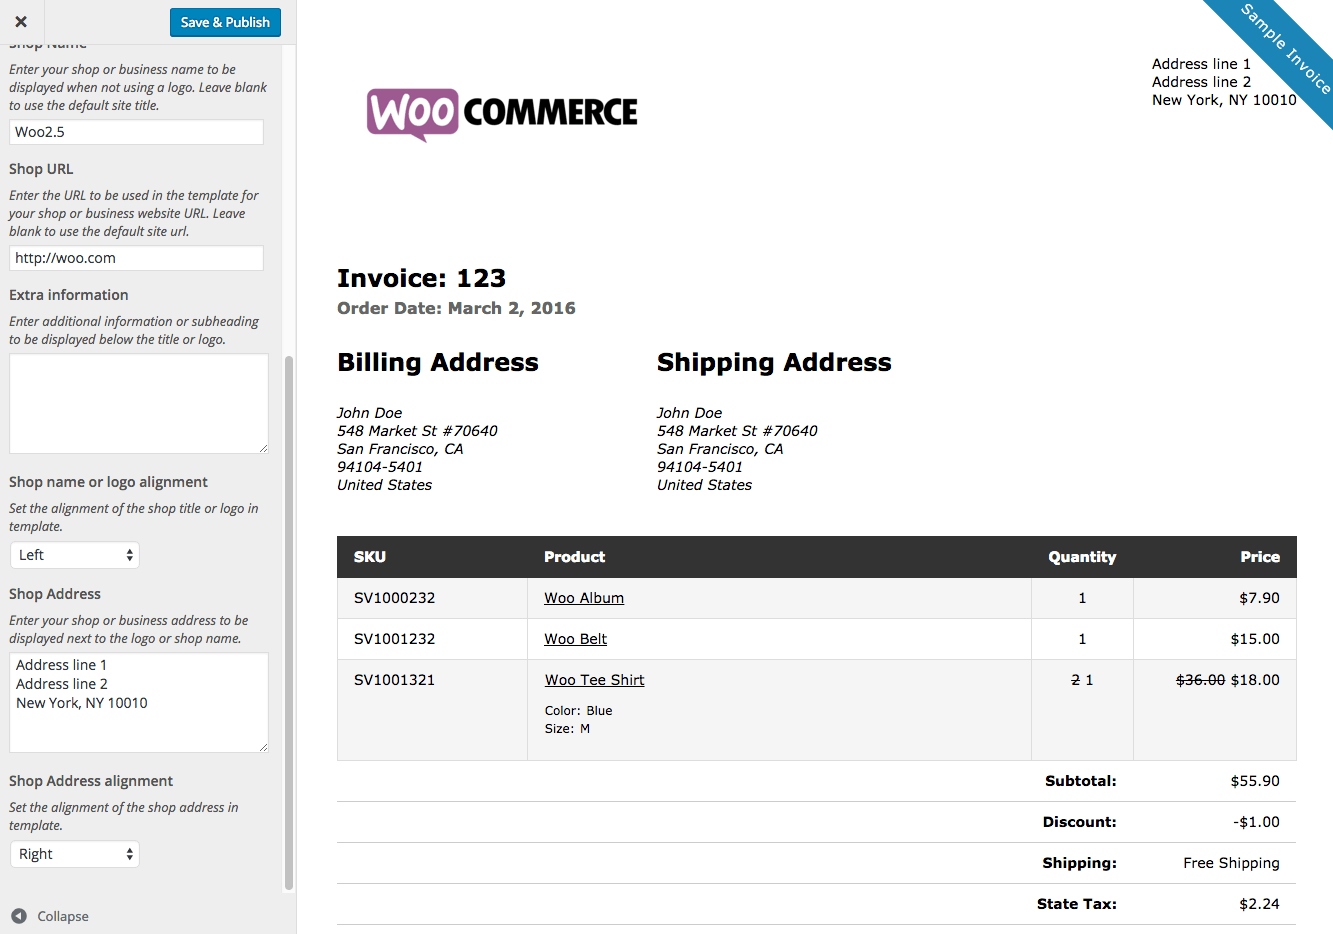 Coolmathgamesus  Unique Woocommerce Print Invoices Amp Packing Lists  Woocommerce Docs With Licious Woocommerce Print Invoices  Packing Lists Customizer With Lovely Landscaping Invoice Template Free Also Invoice Template Sample In Addition Auto Body Invoice Template And Dealer Invoices As Well As Free Invoice Templates Excel Additionally Legal Invoice Sample From Docswoocommercecom With Coolmathgamesus  Licious Woocommerce Print Invoices Amp Packing Lists  Woocommerce Docs With Lovely Woocommerce Print Invoices  Packing Lists Customizer And Unique Landscaping Invoice Template Free Also Invoice Template Sample In Addition Auto Body Invoice Template From Docswoocommercecom